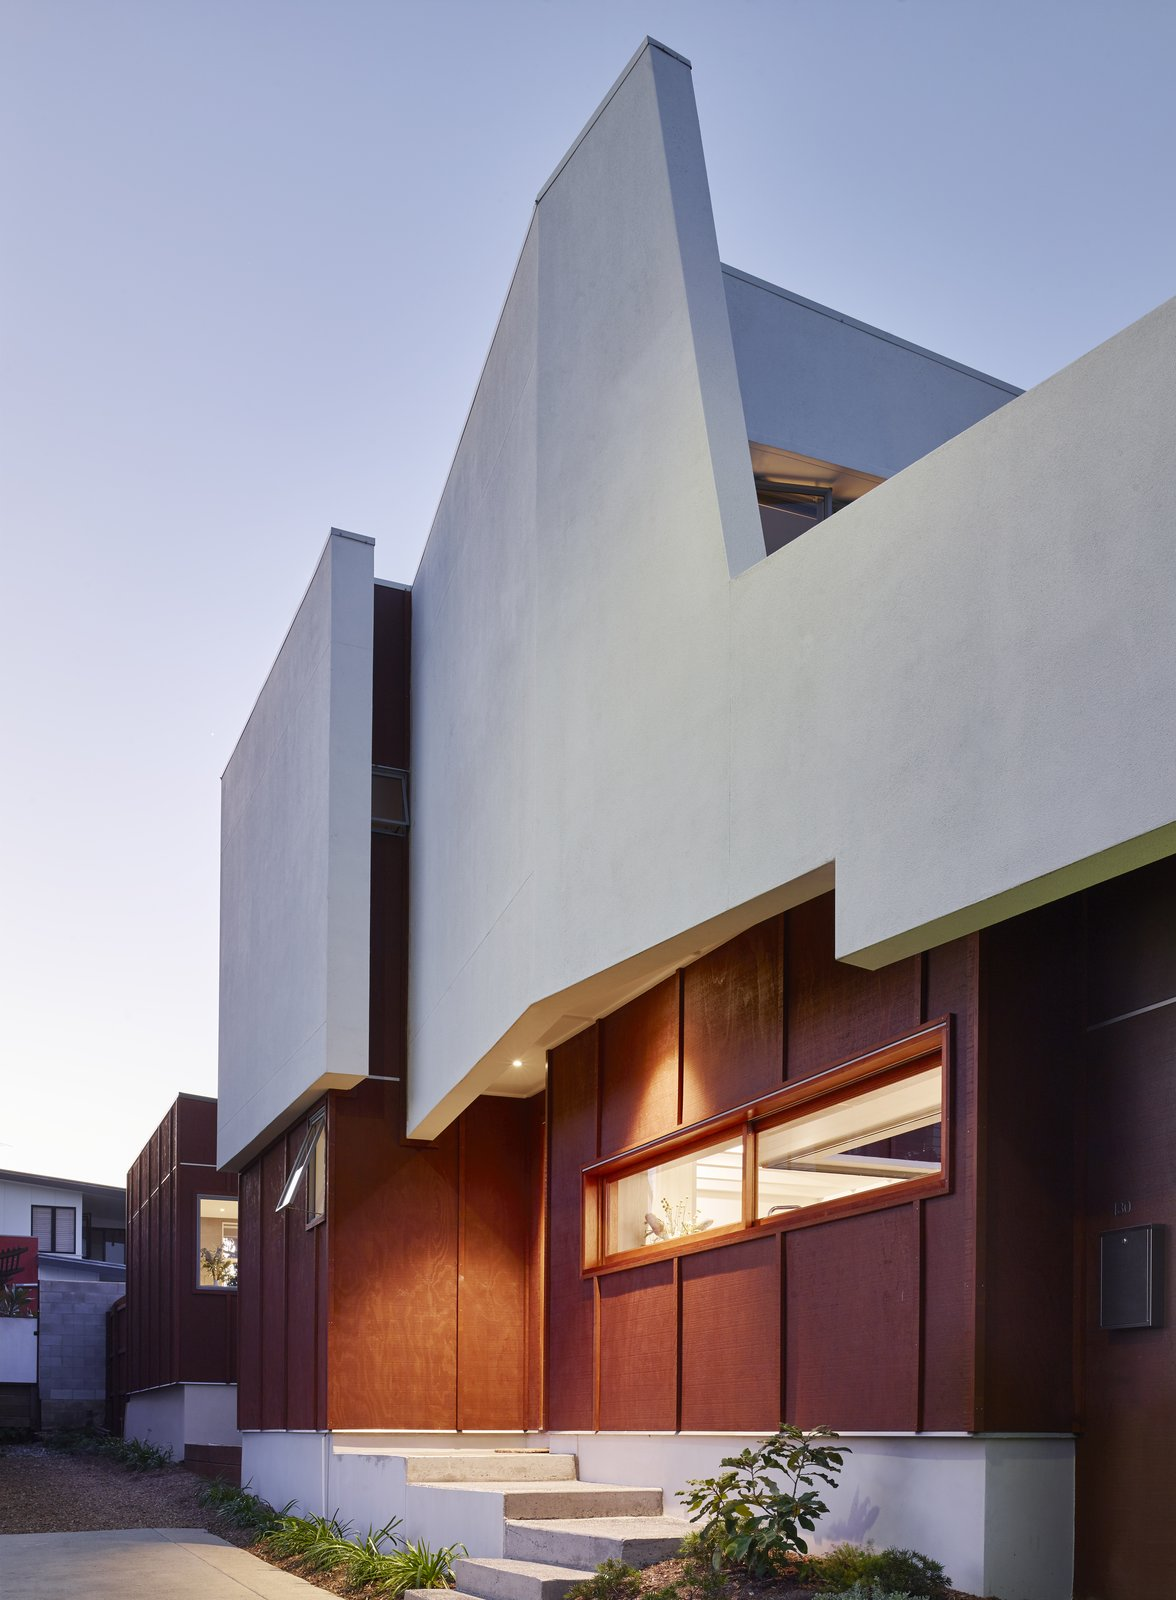 """""""At the front door, the house is only six feet wide and opens to the north-facing landscape behind, providing views out and allowing light in,"""" O'Neill said. The home's uniquely-shaped roof is painted with Taubmans' Crisp White.  Annie Street by Kelly Dawson"""